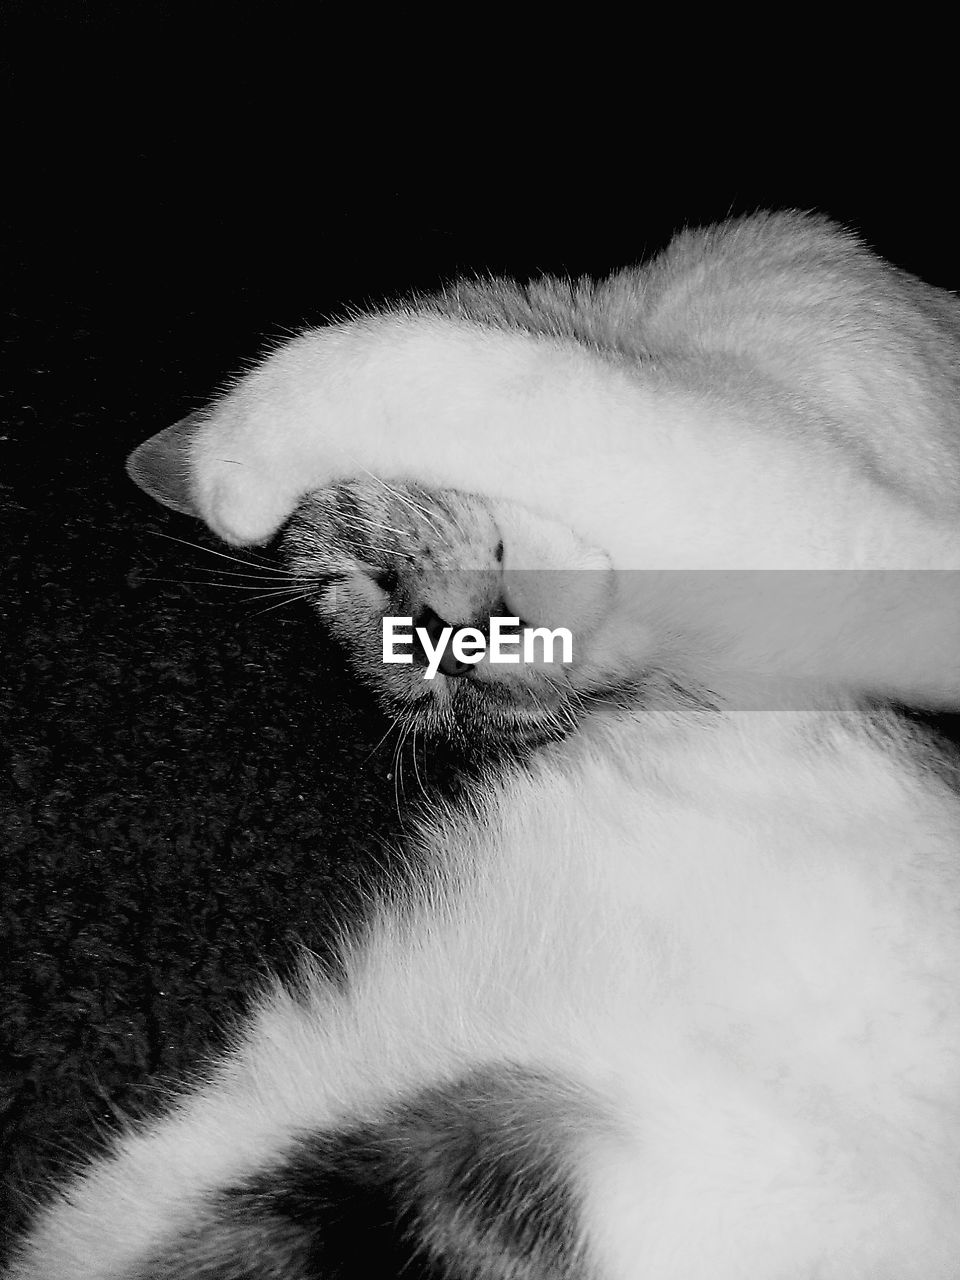 one animal, pets, domestic cat, animal themes, domestic animals, feline, mammal, sleeping, eyes closed, cat, close-up, indoors, no people, relaxation, paw, whisker, day